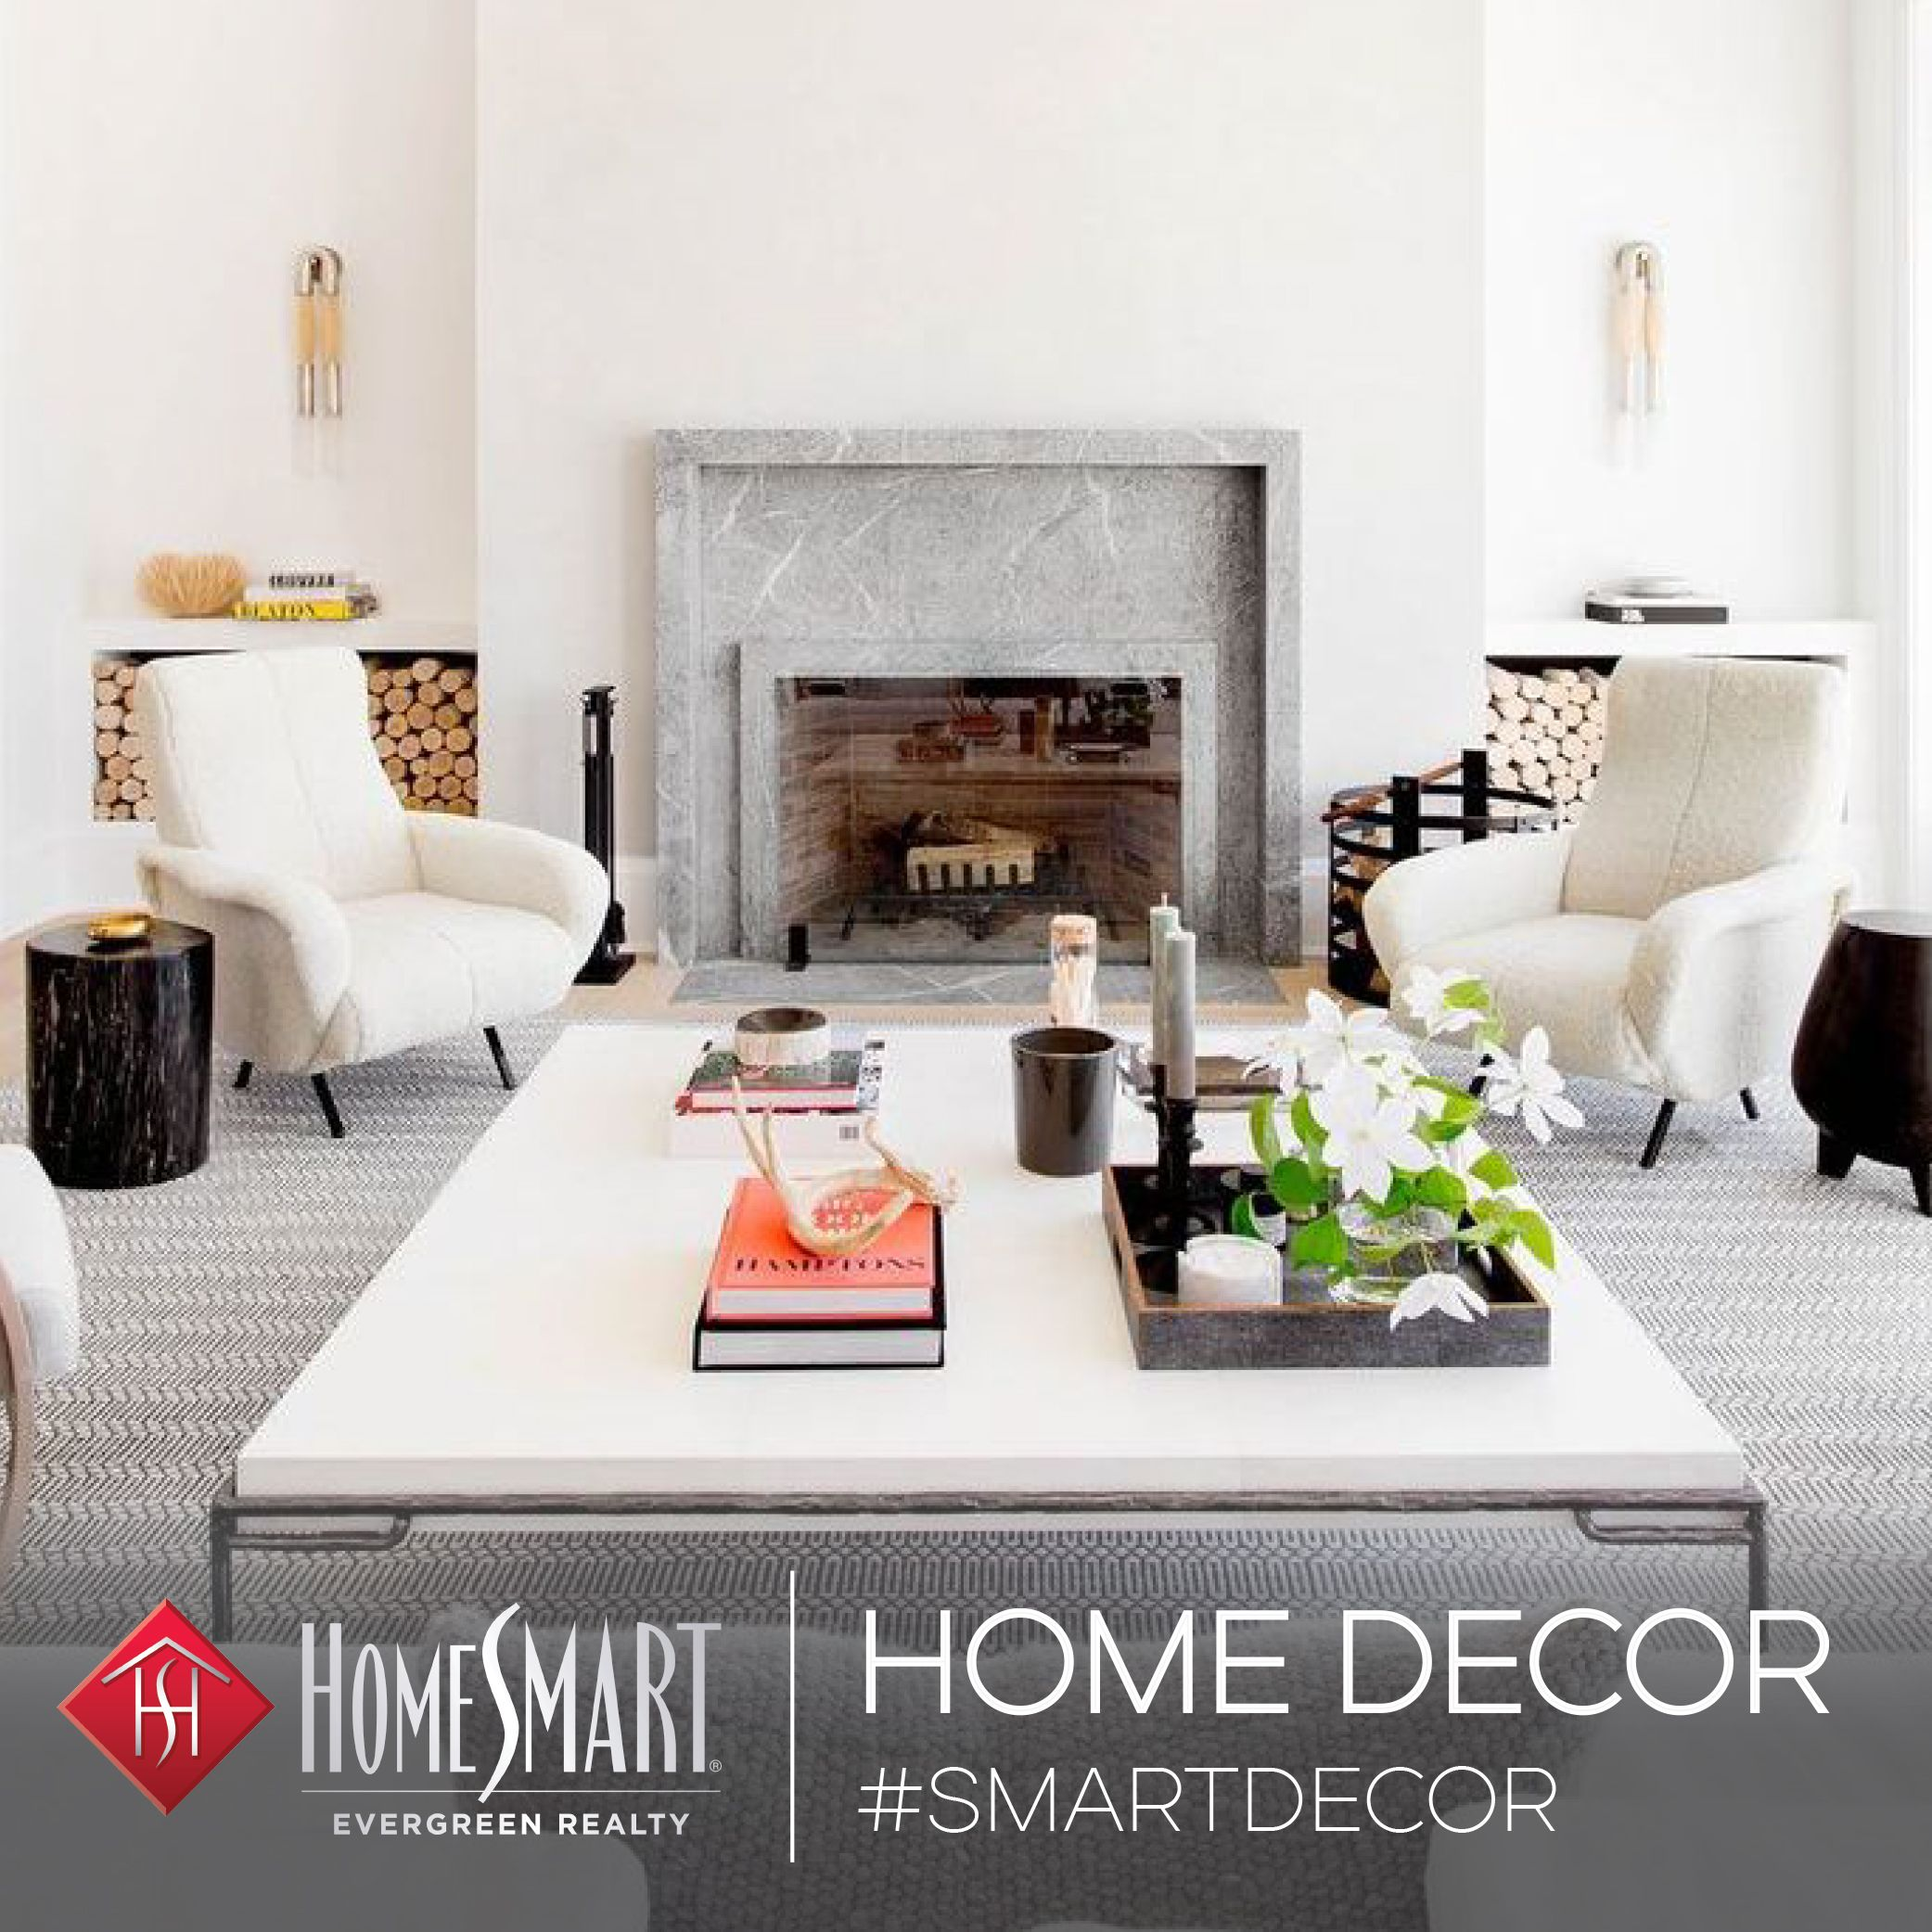 SMARTDECOR help with furniture for a cafe or restaurant 44